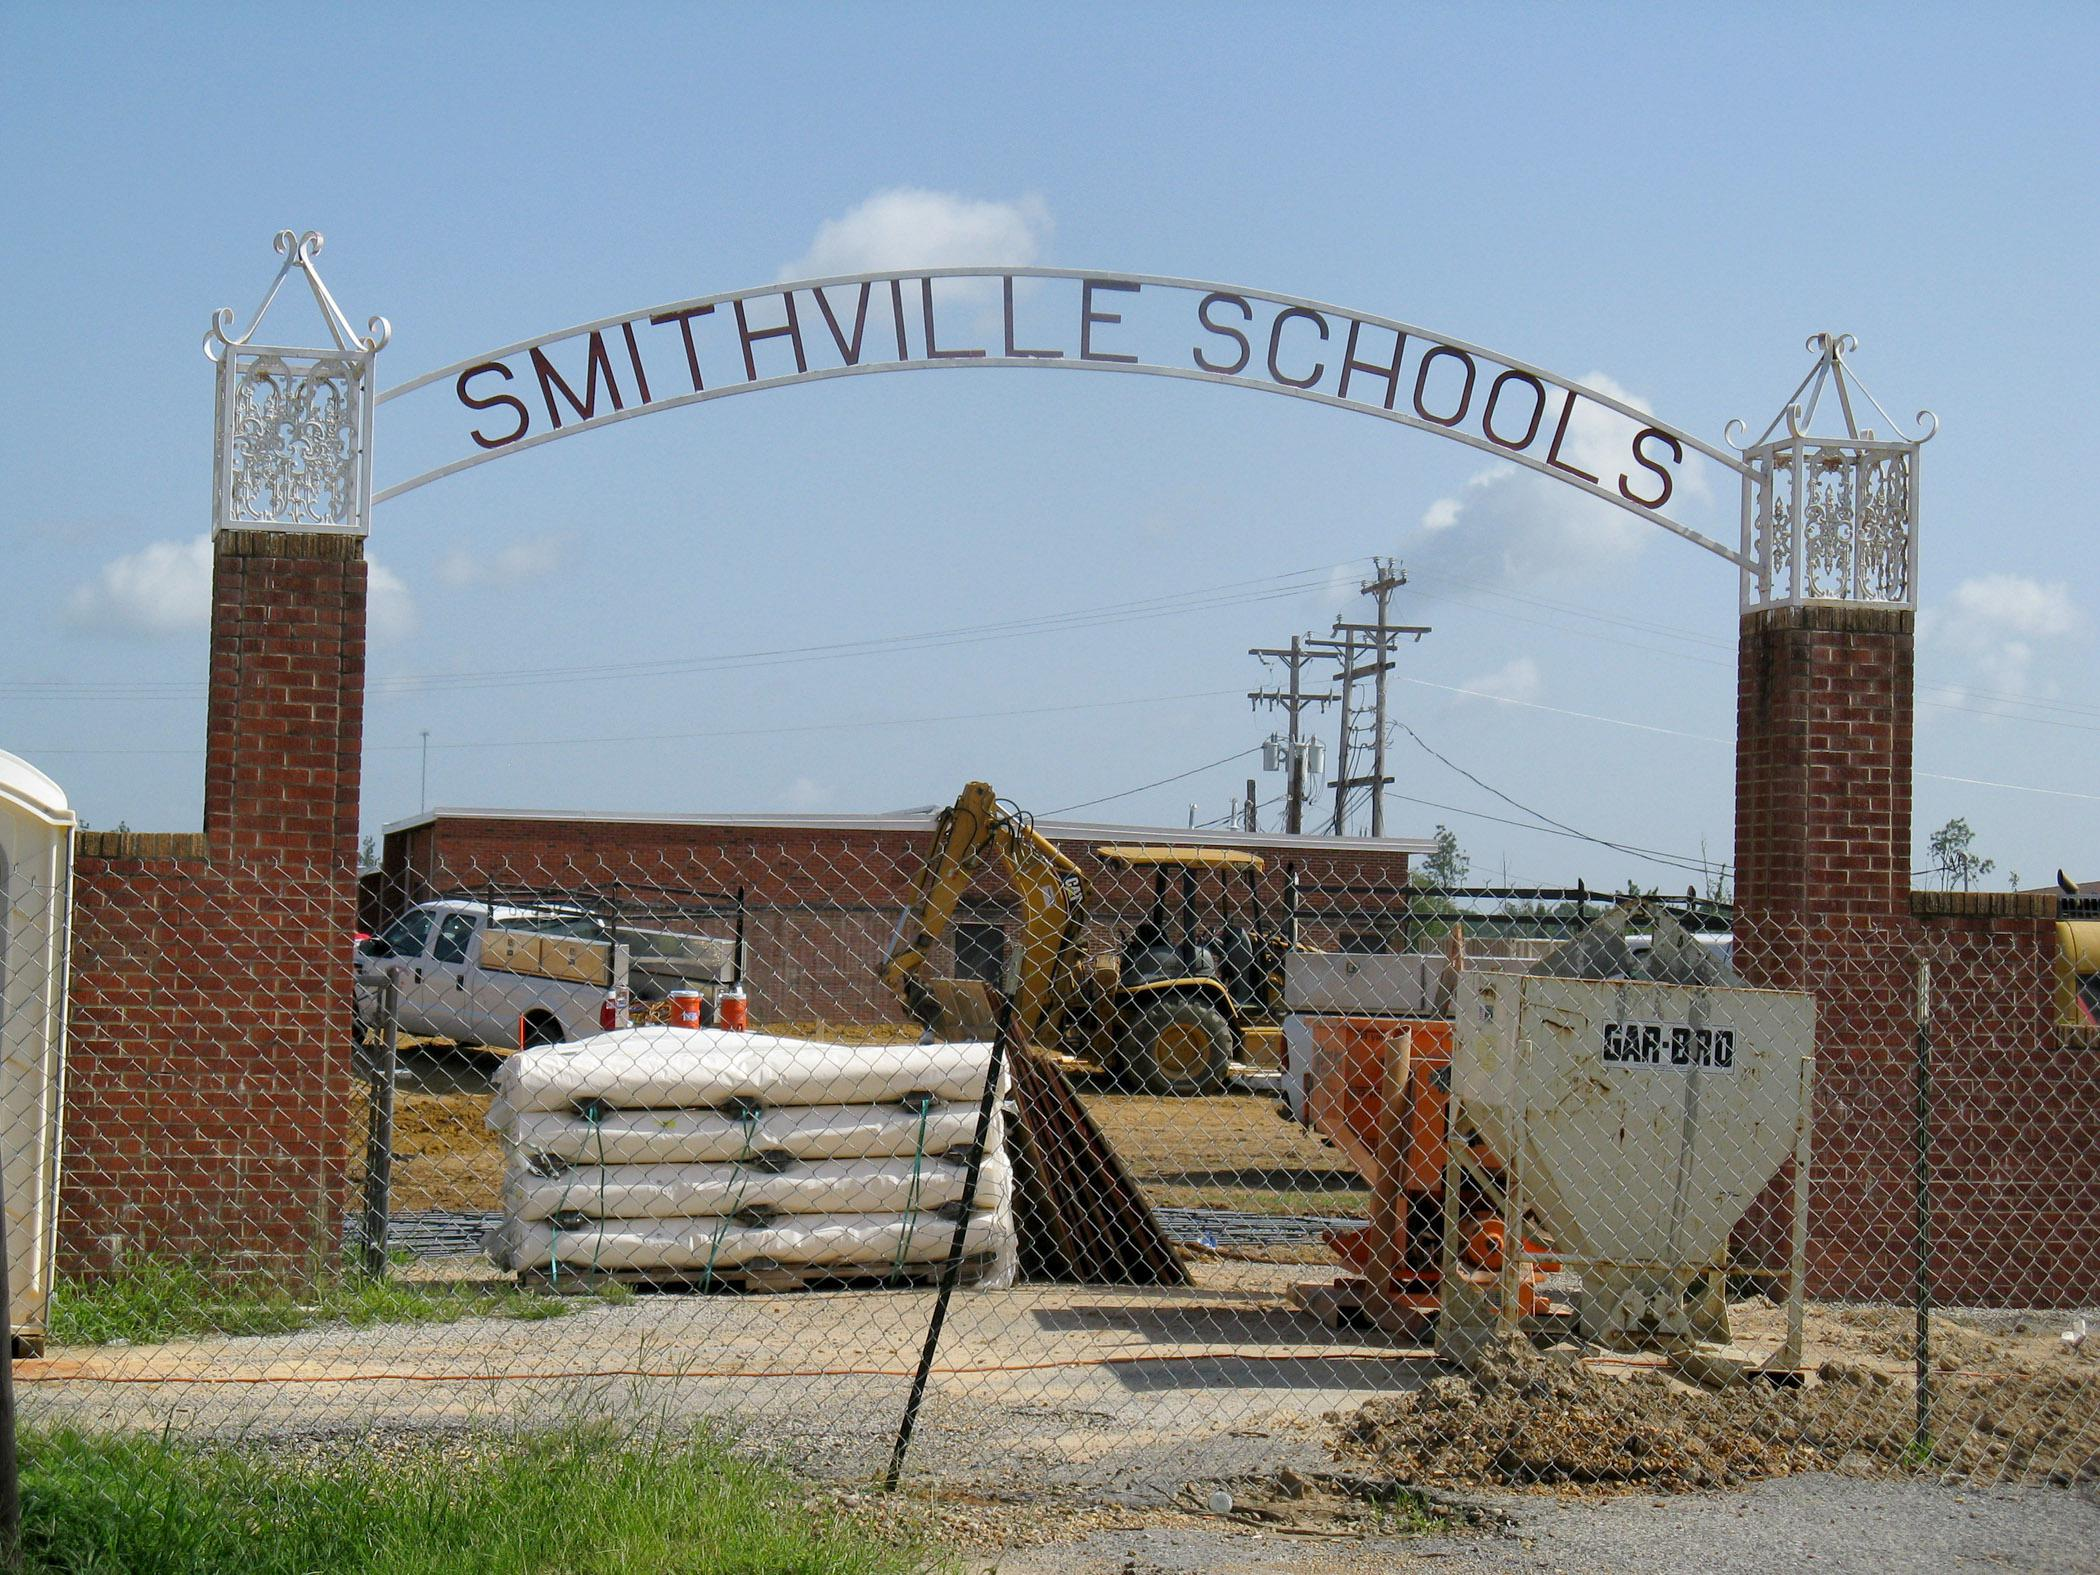 While Smithville Schools are under construction due to tornado damage, teachers hold classes in temporary buildings and use computers donated by several organizations, including the Mississippi State University Extension Service. School officials expect to move into the reconstructed school for the 2013-2014 school year. (Photo by MSU Extension Center for Technology Outreach/Bekah Sparks)